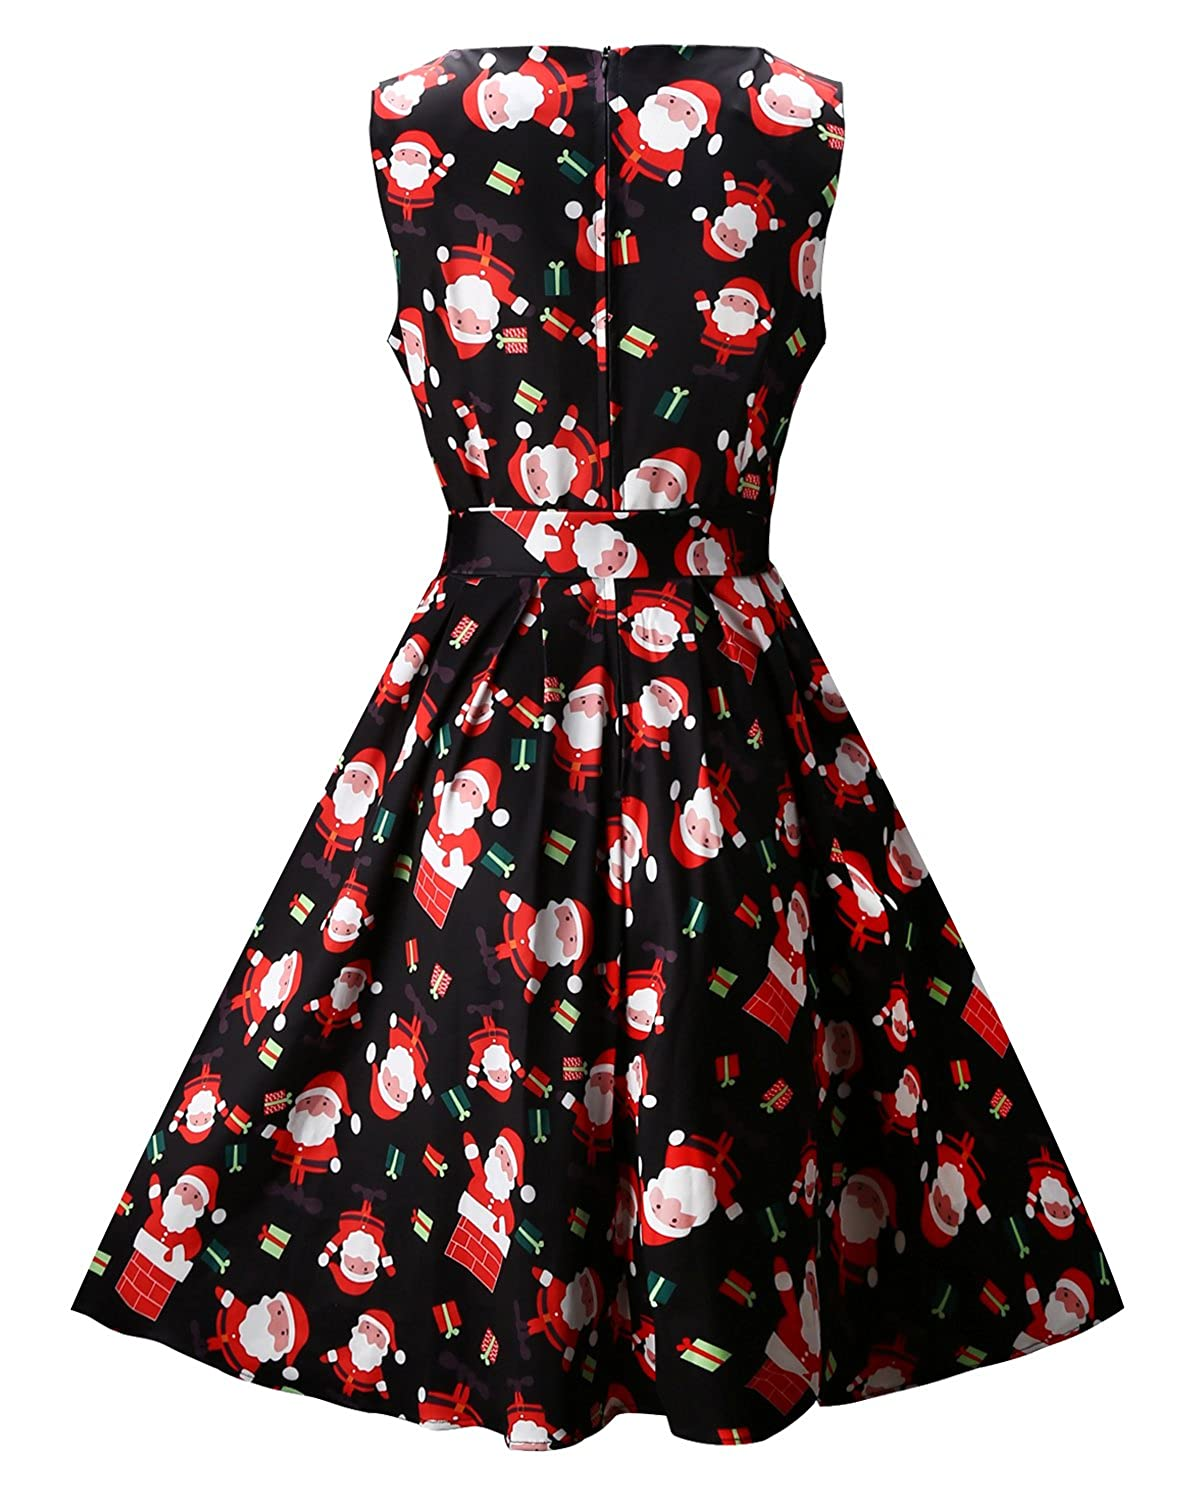 48091b5c95a OUGES Women s Fit and Flare Cocktail Dress at Amazon Women s Clothing store